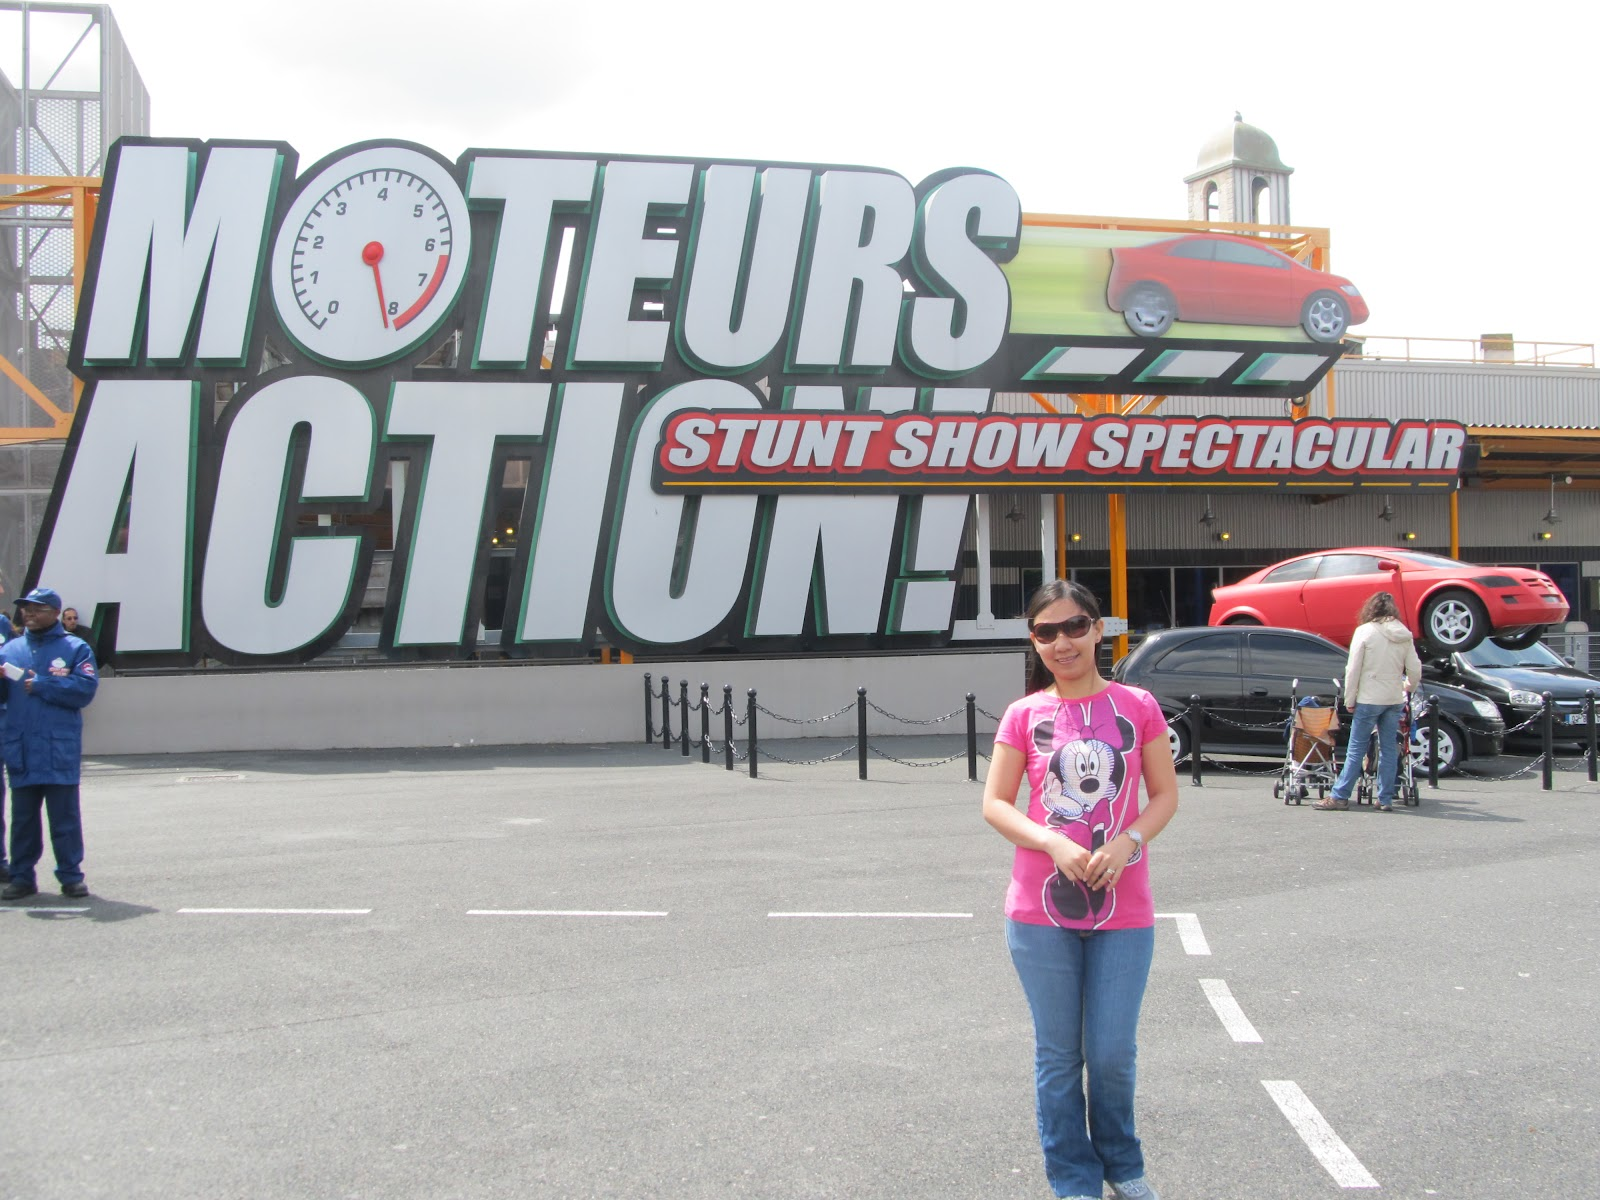 Paris Disneyland Walt Disney Studios Motors Action Stunt Show Spectacular